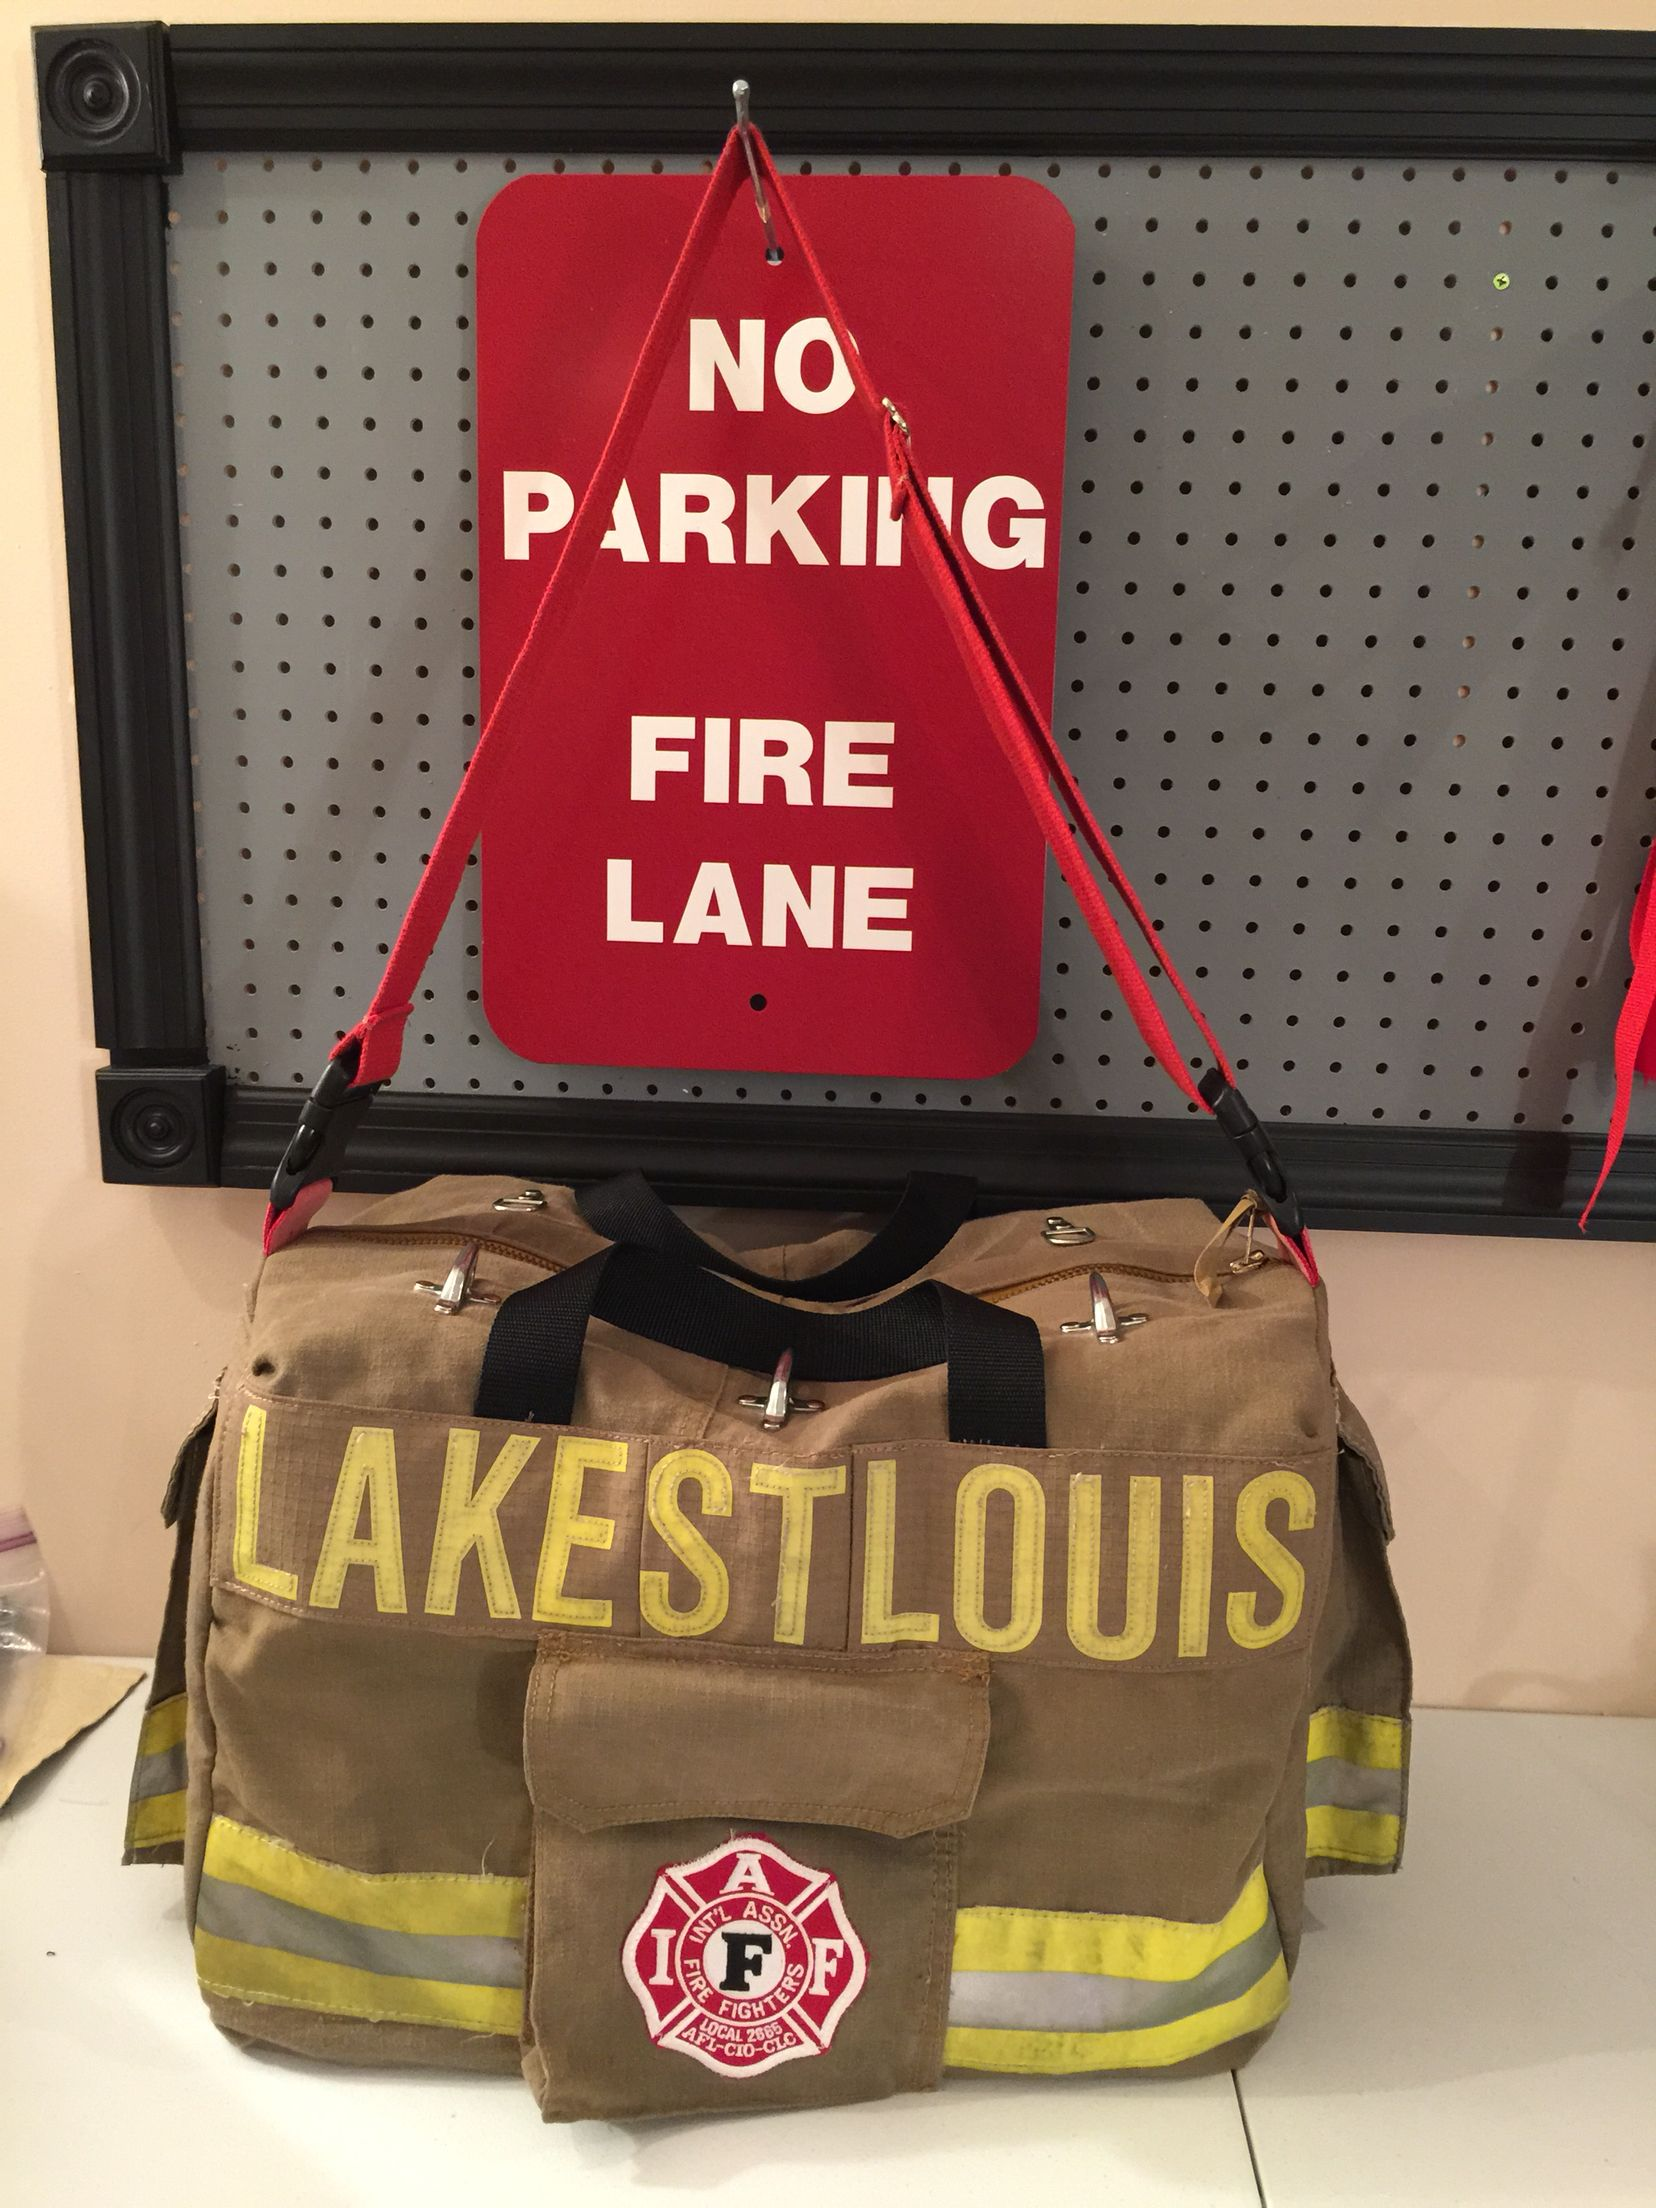 Recycled bunker gear bags - Station Bag By Recover Gear Bags Llc Made From Recycled Firefighter Bunker Gear Find